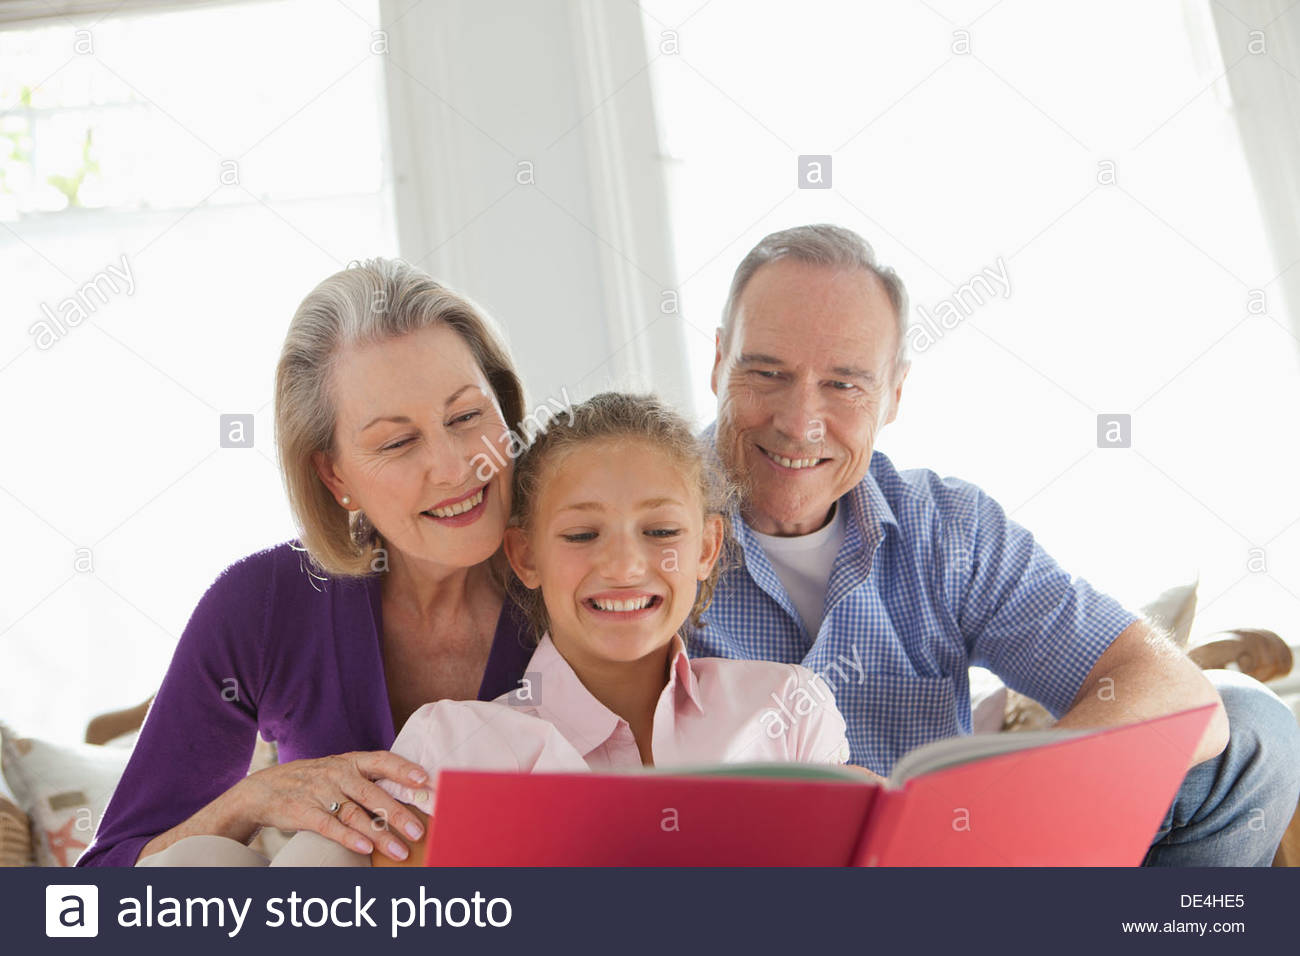 Smiling grandparents and granddaughter reading book - Stock Image